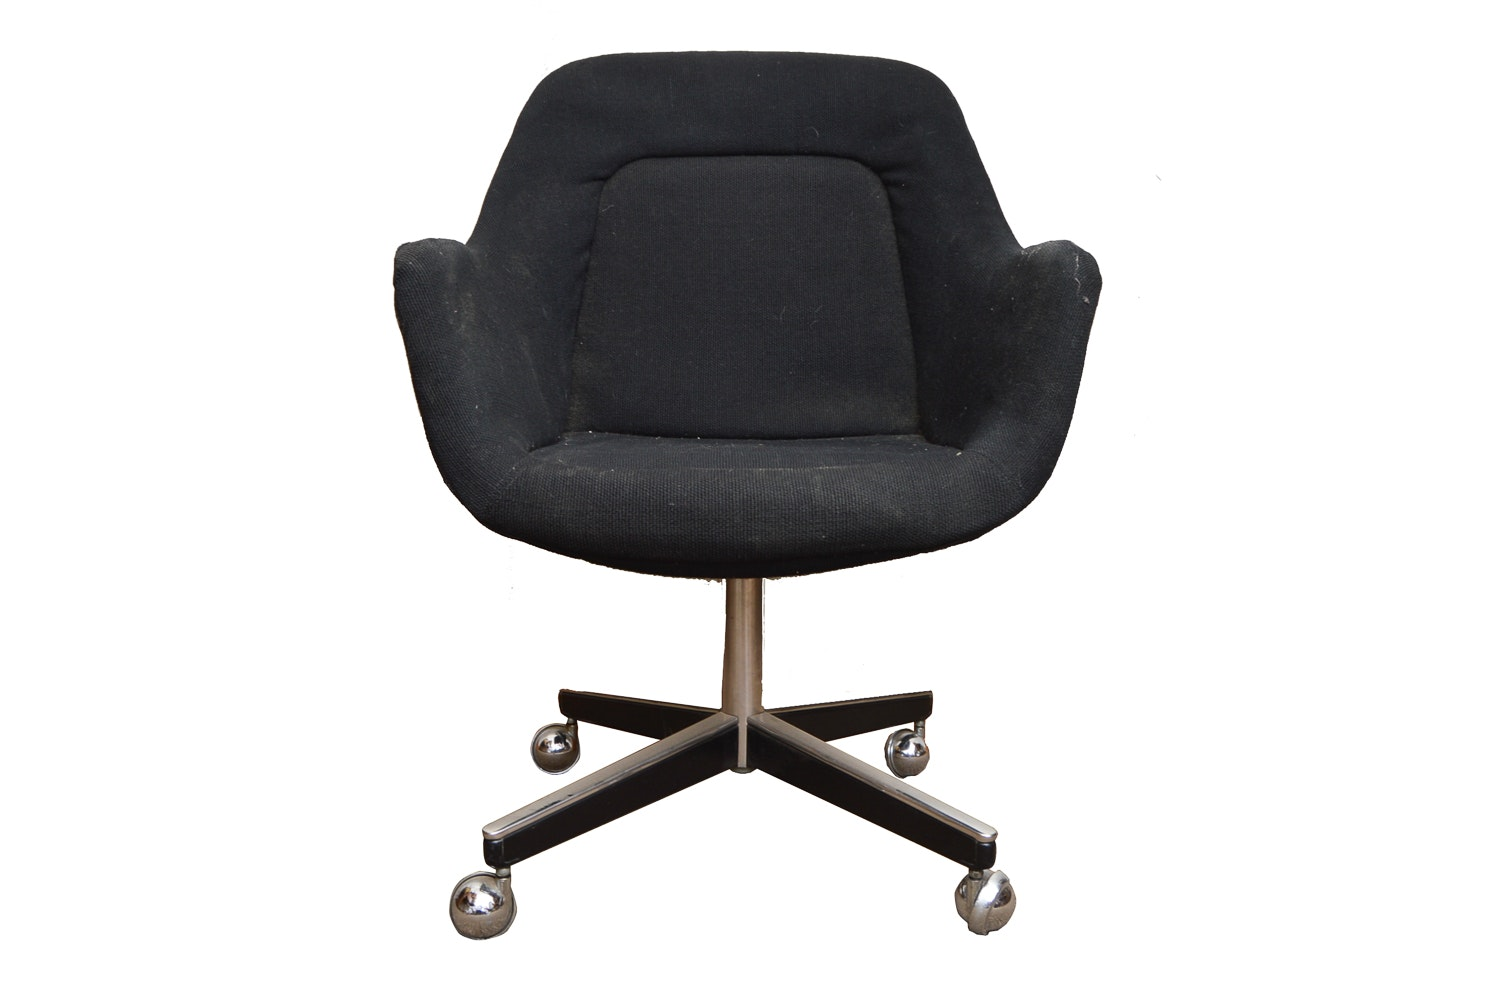 Vintage Mid Century Modern Rolling Office Chair from Knoll